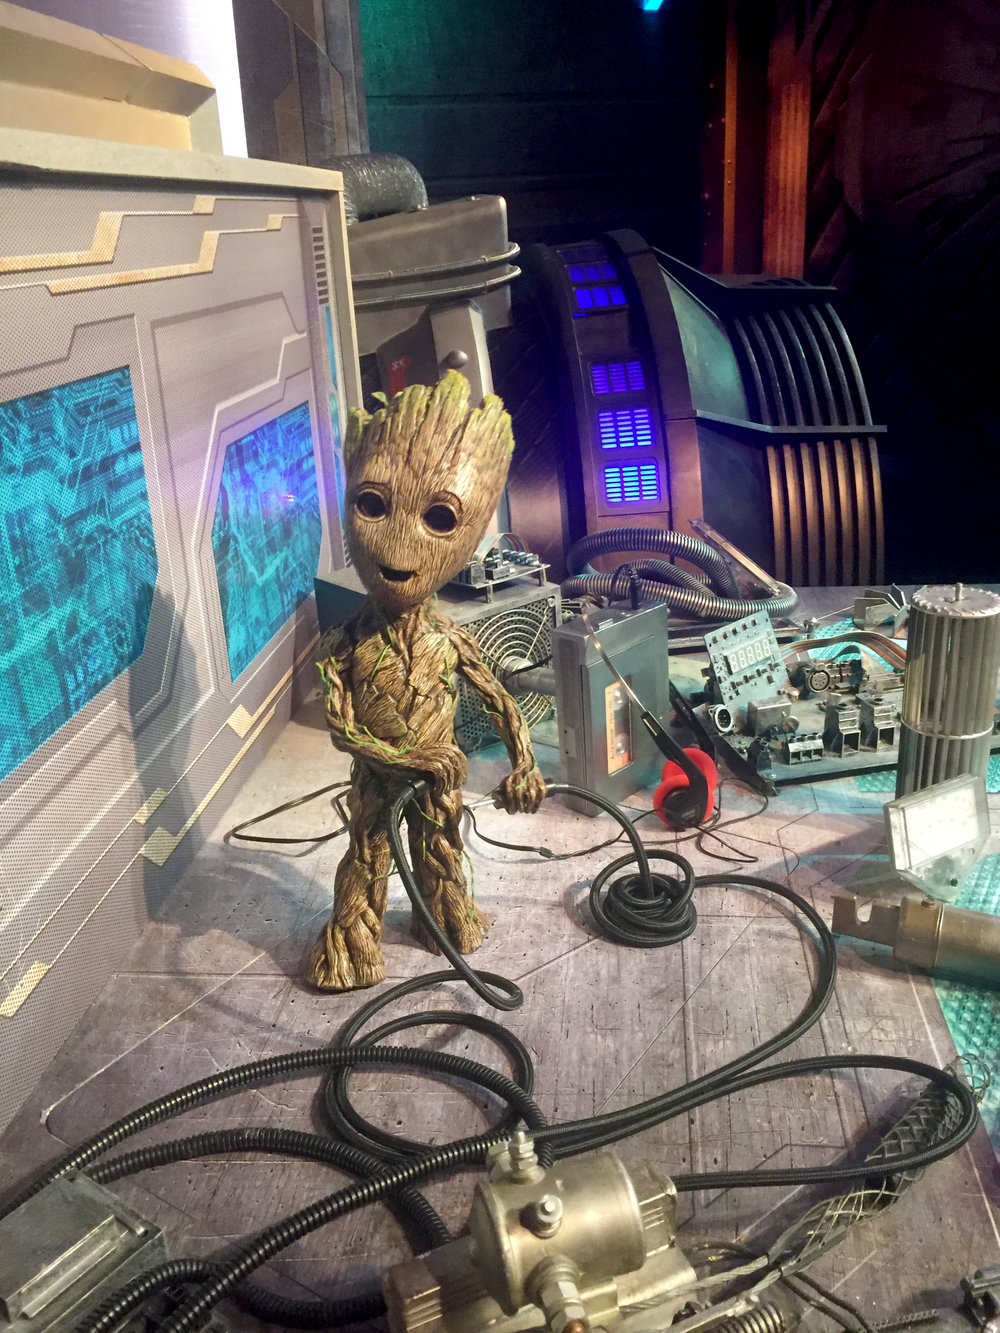 Isn't Baby Groot so adorable?!?!